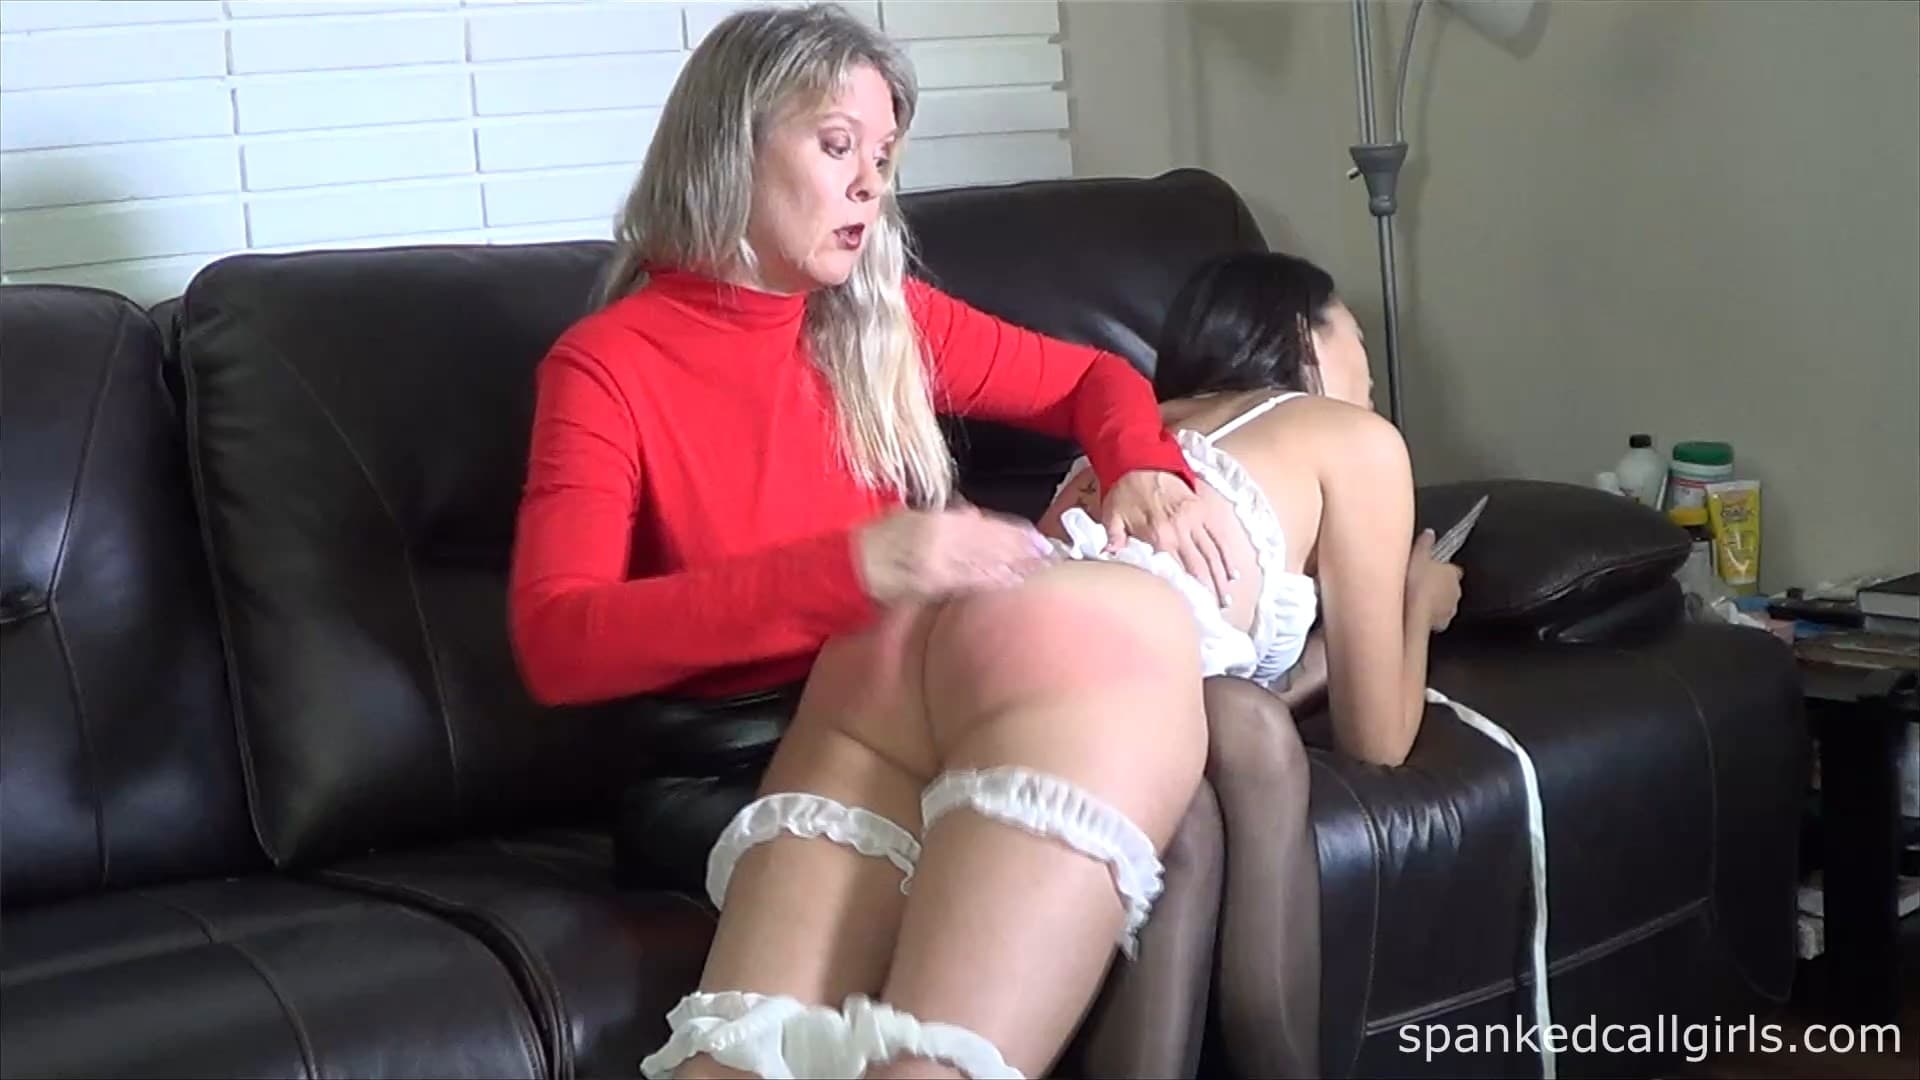 Spanked Call Girls – MP4/HD – Clare Fonda, Madi Laine – Madam Clare Spanks Madi Laine